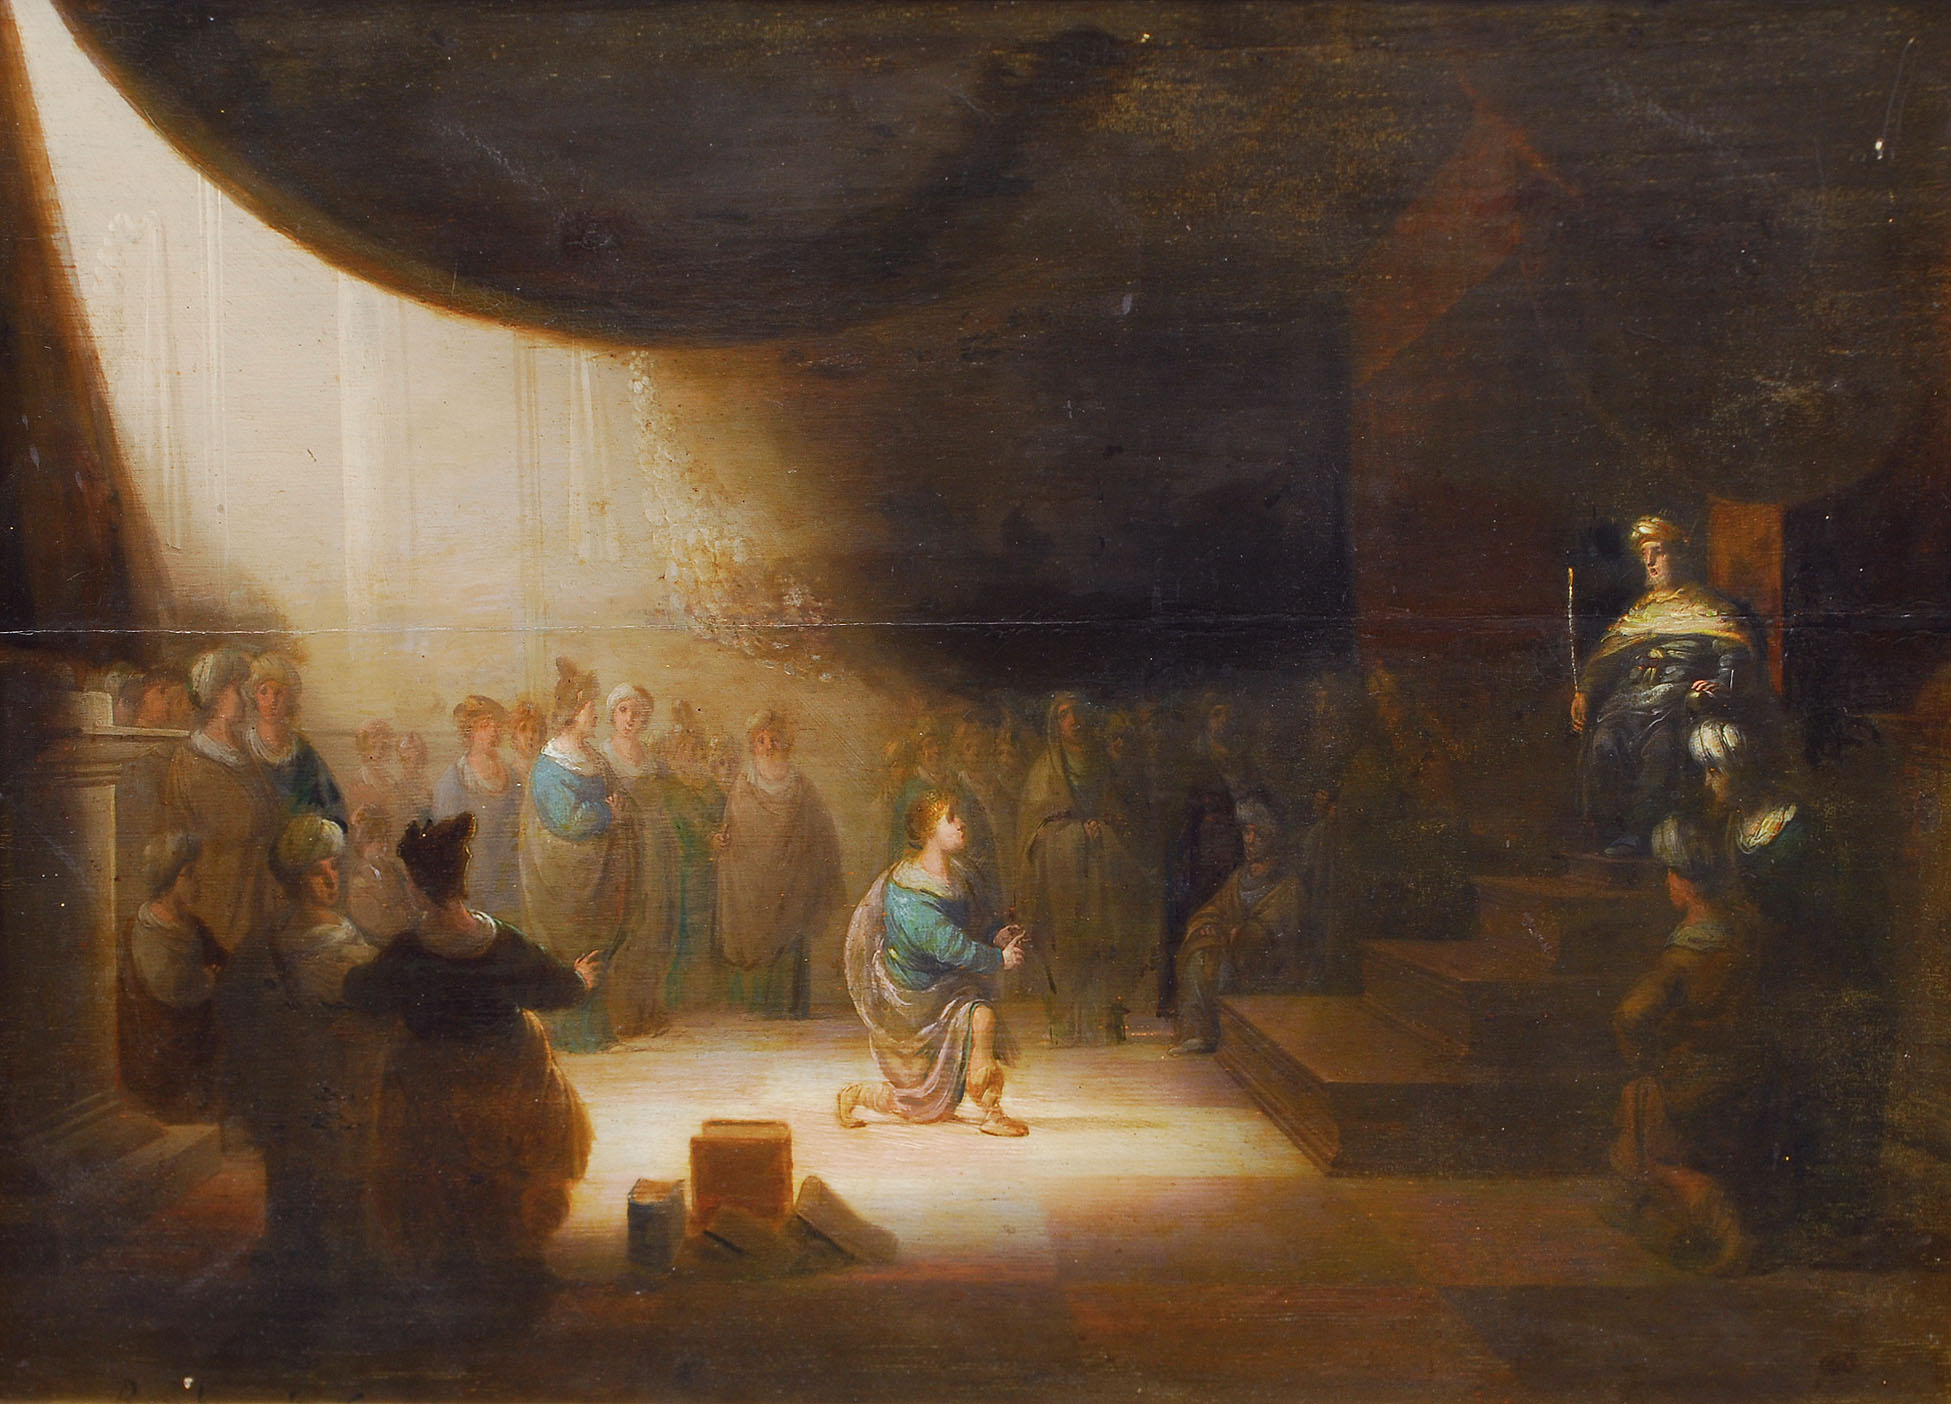 Daniel interpreting Nebukadnezar's dream